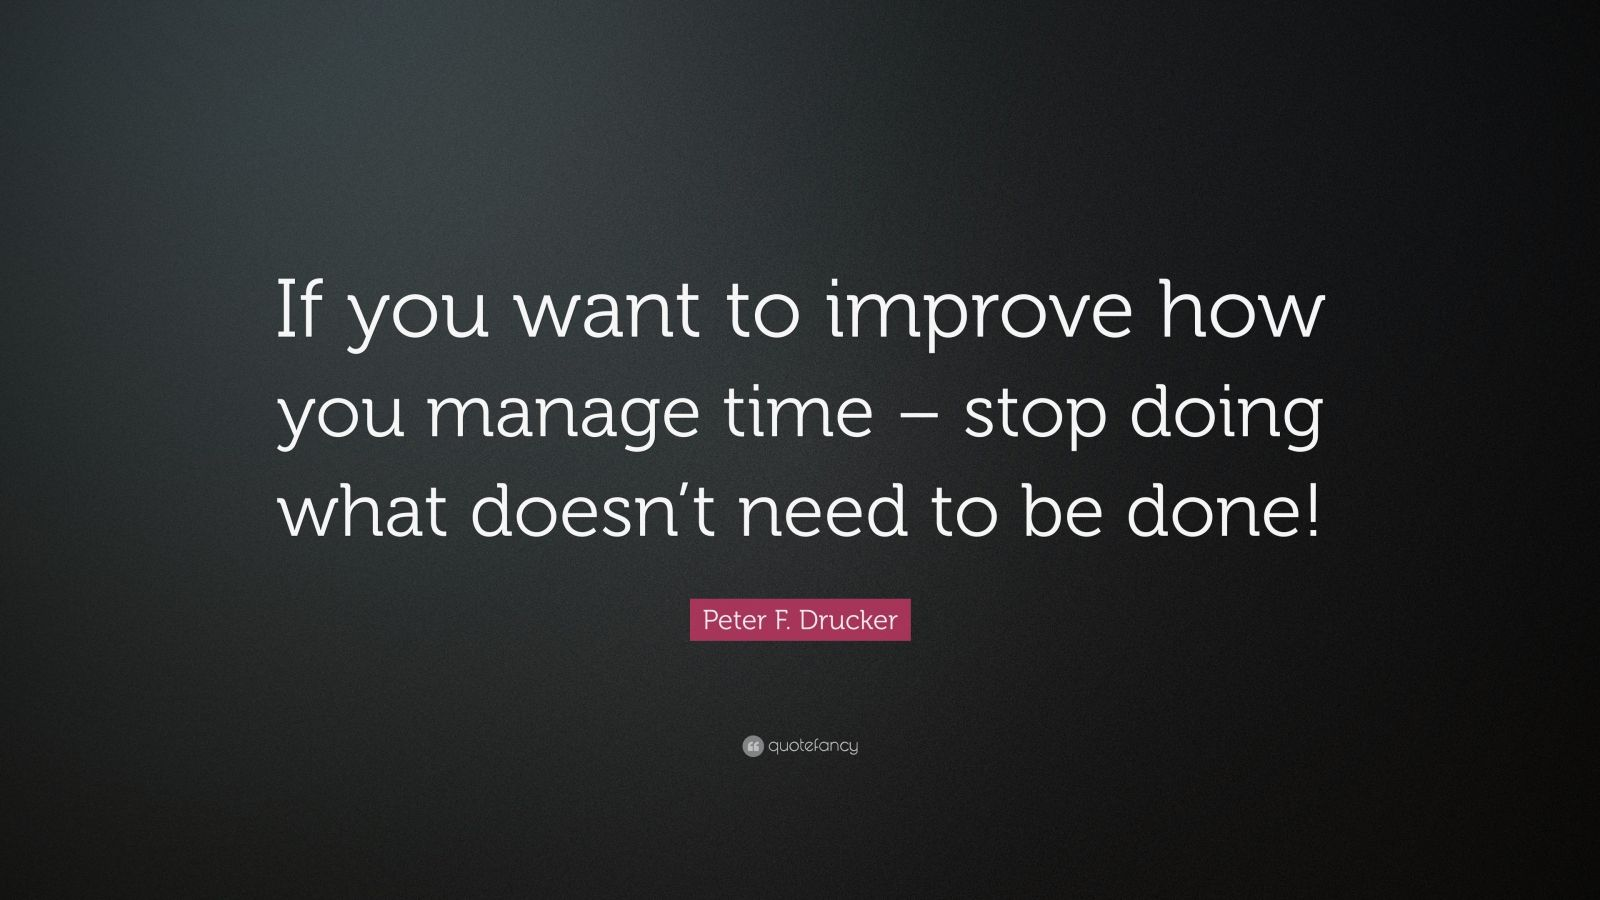 """Peter F. Drucker Quote: """"If you want to improve how you manage time – stop doing what doesn't need to be done!"""""""